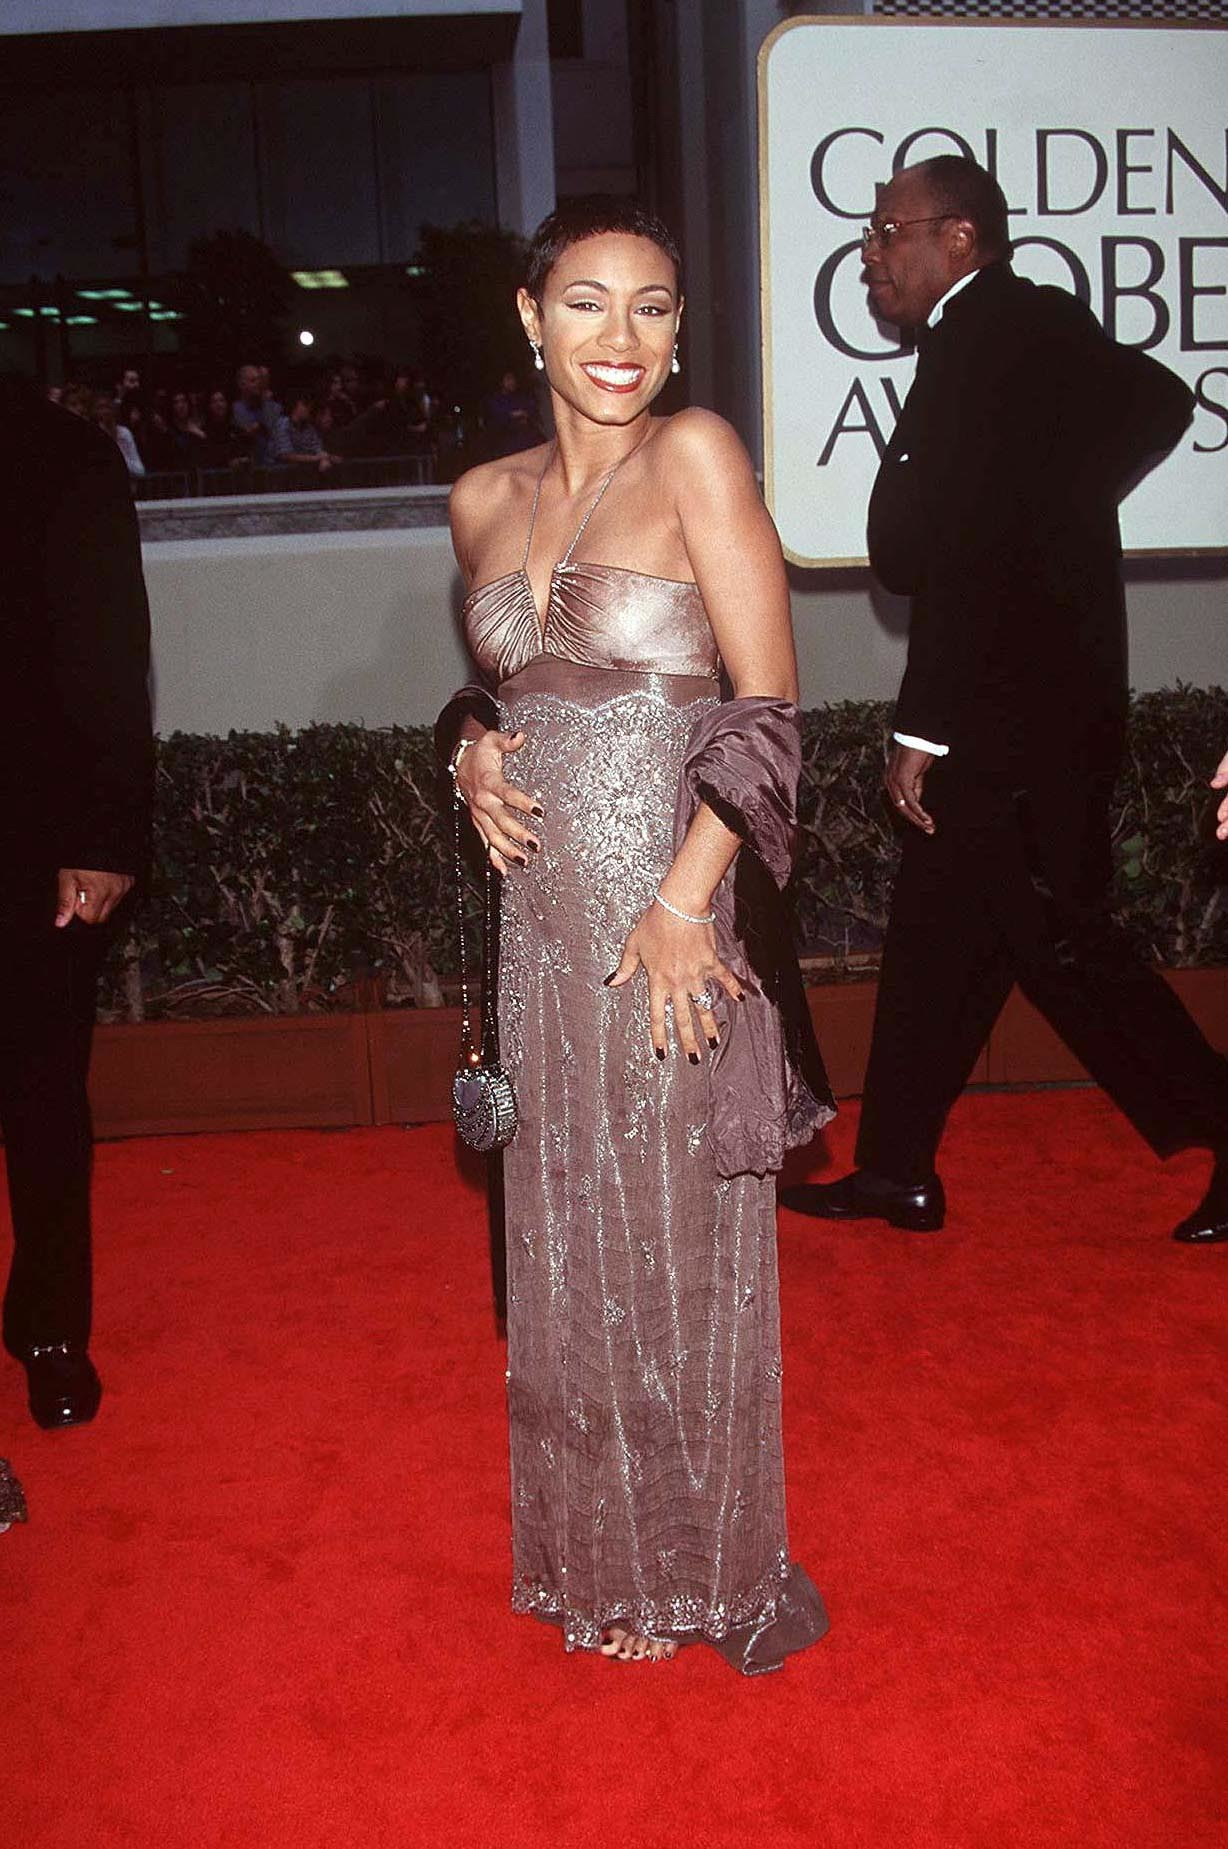 Jada Pinkett arrives at the 55th annual Golden Globe awards in Bevery Hills on Jan. 18, 1998.